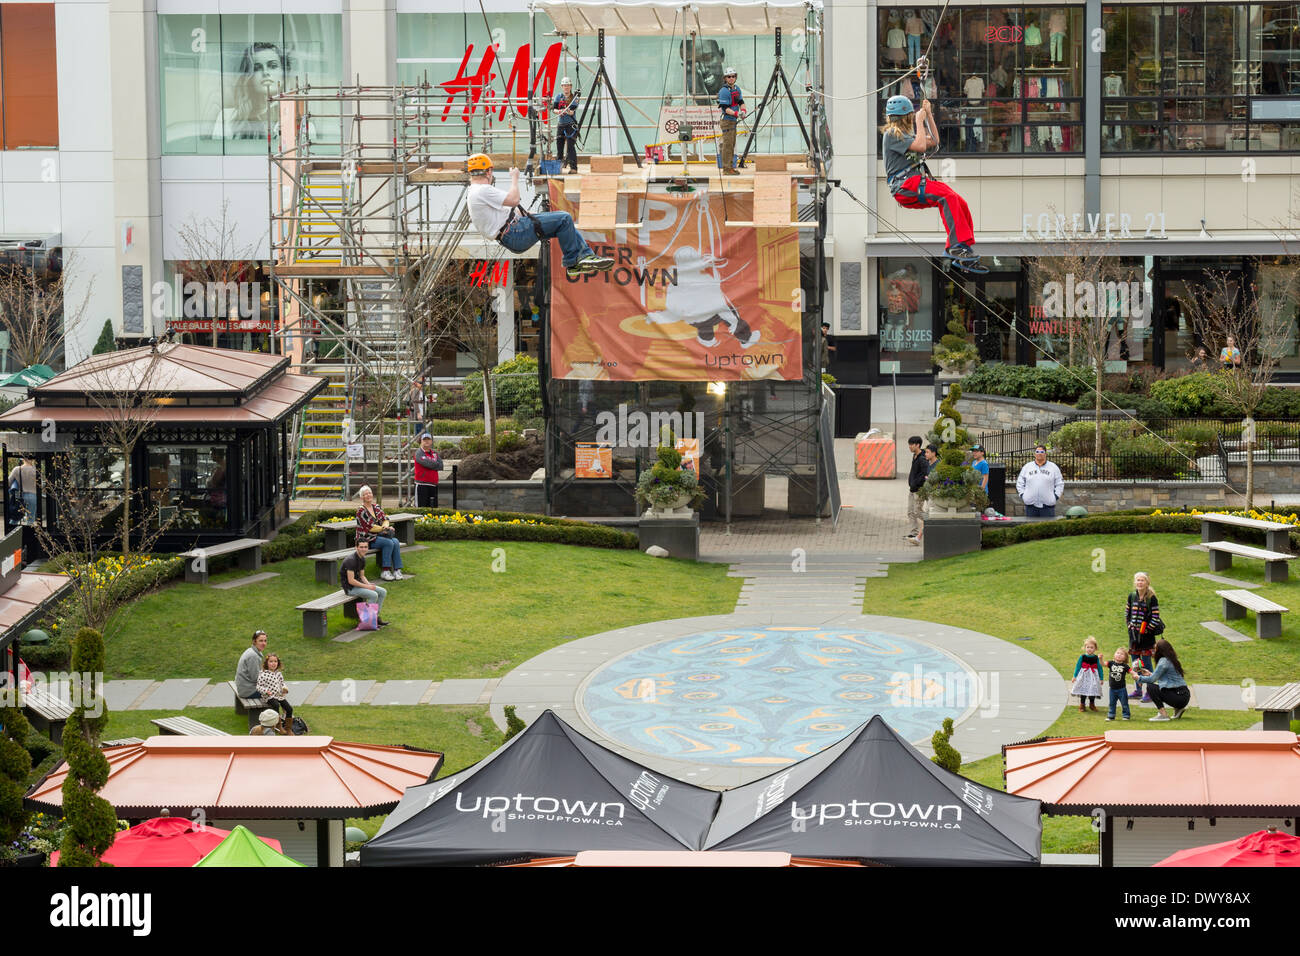 People zipping down Zip Line setup over Uptown Mall shopping center at Spring Break-Victoria, British Columbia, Canada. - Stock Image